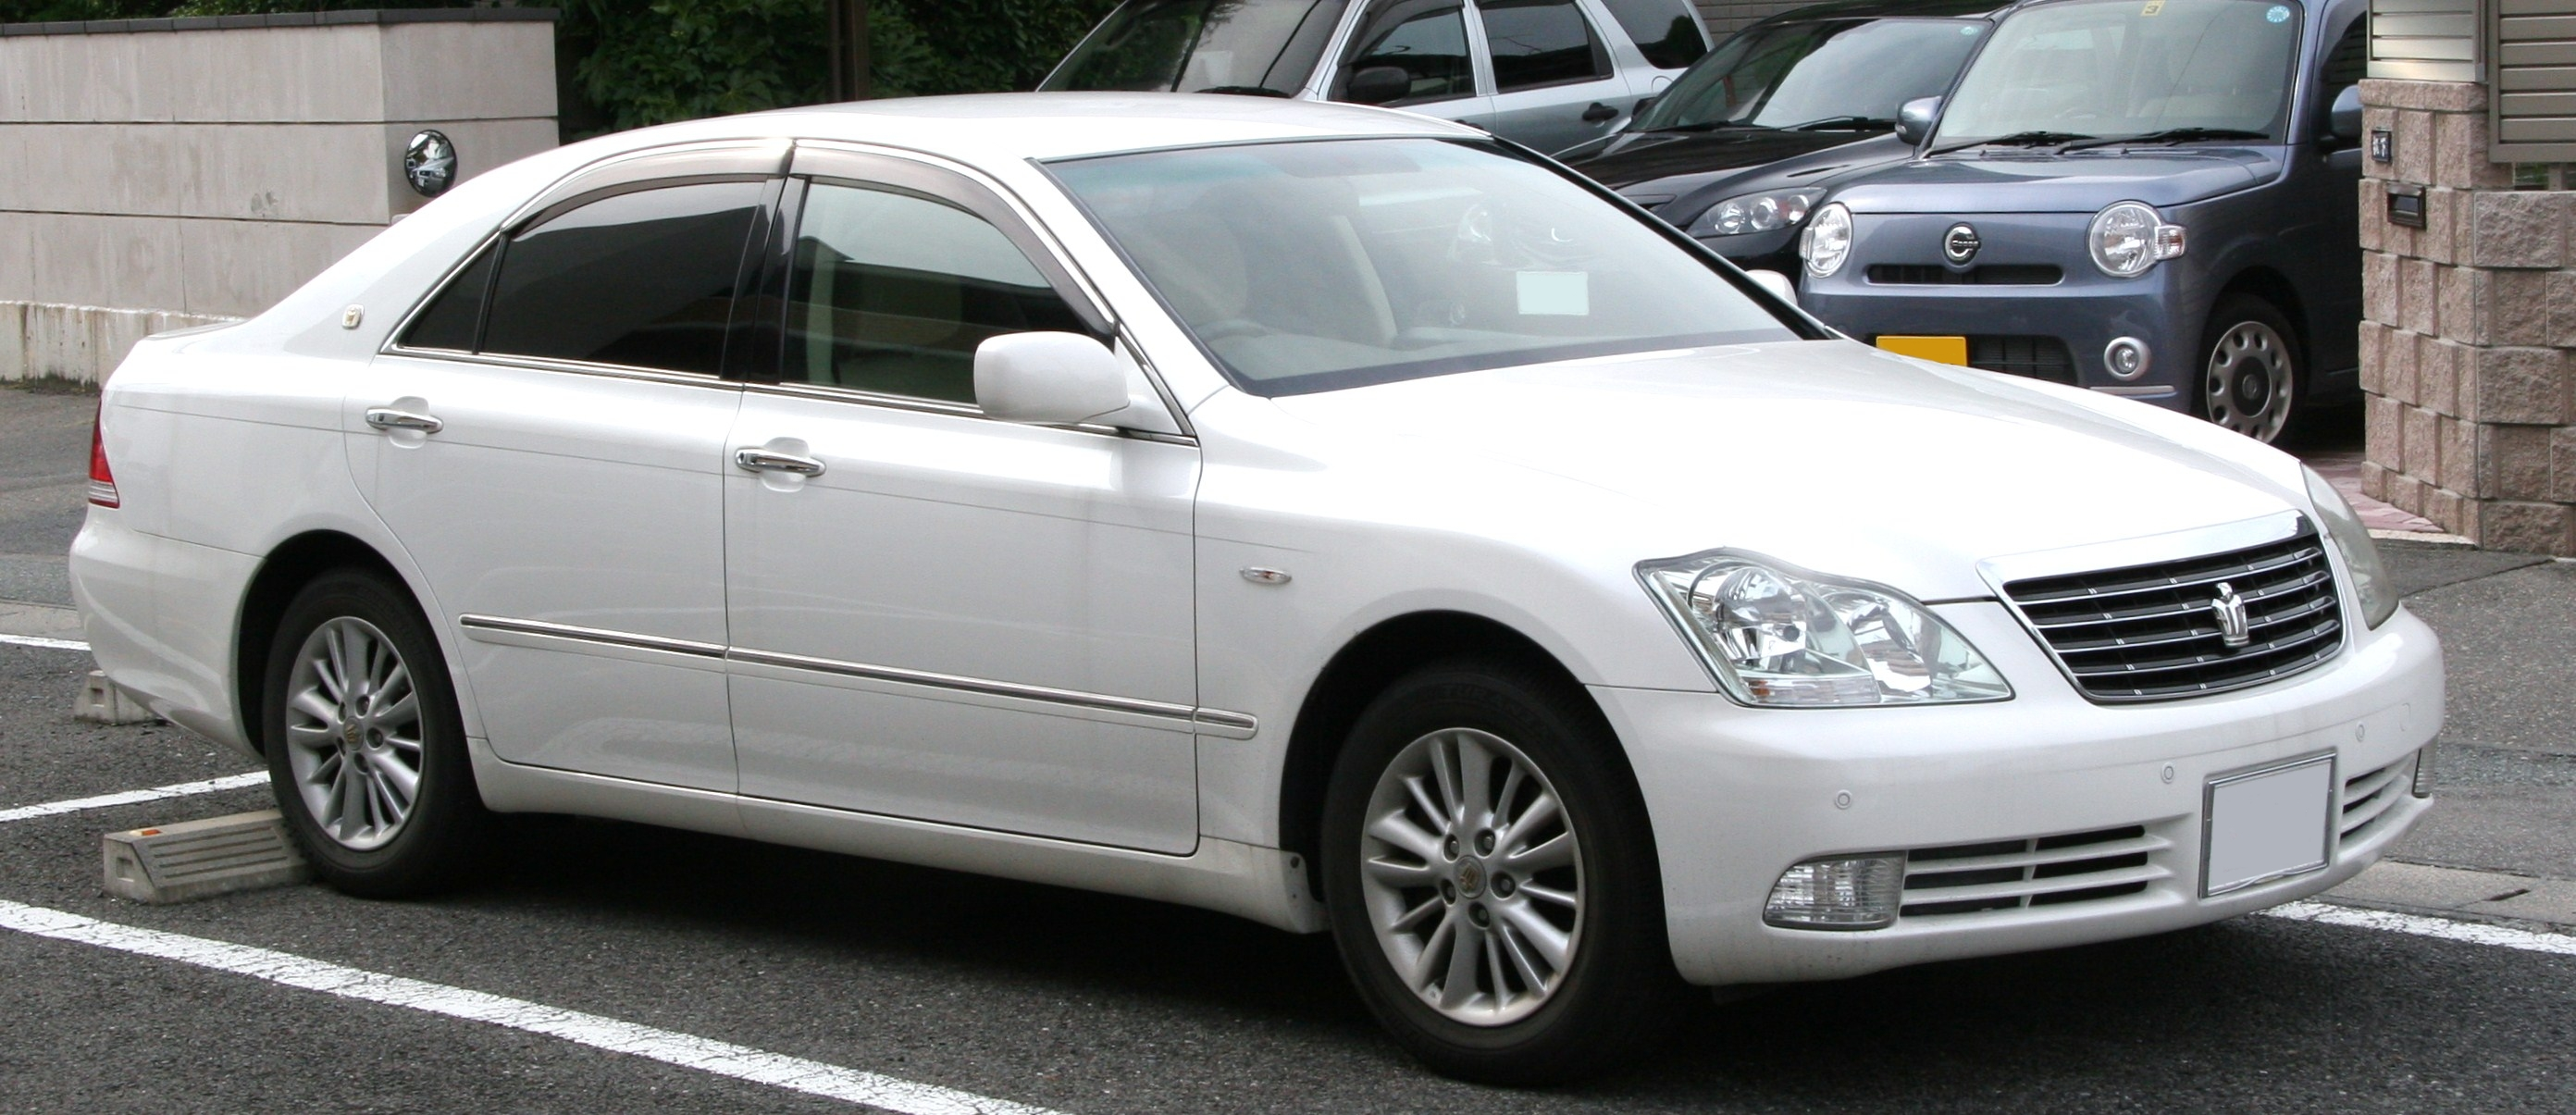 2005 Toyota Crown #2